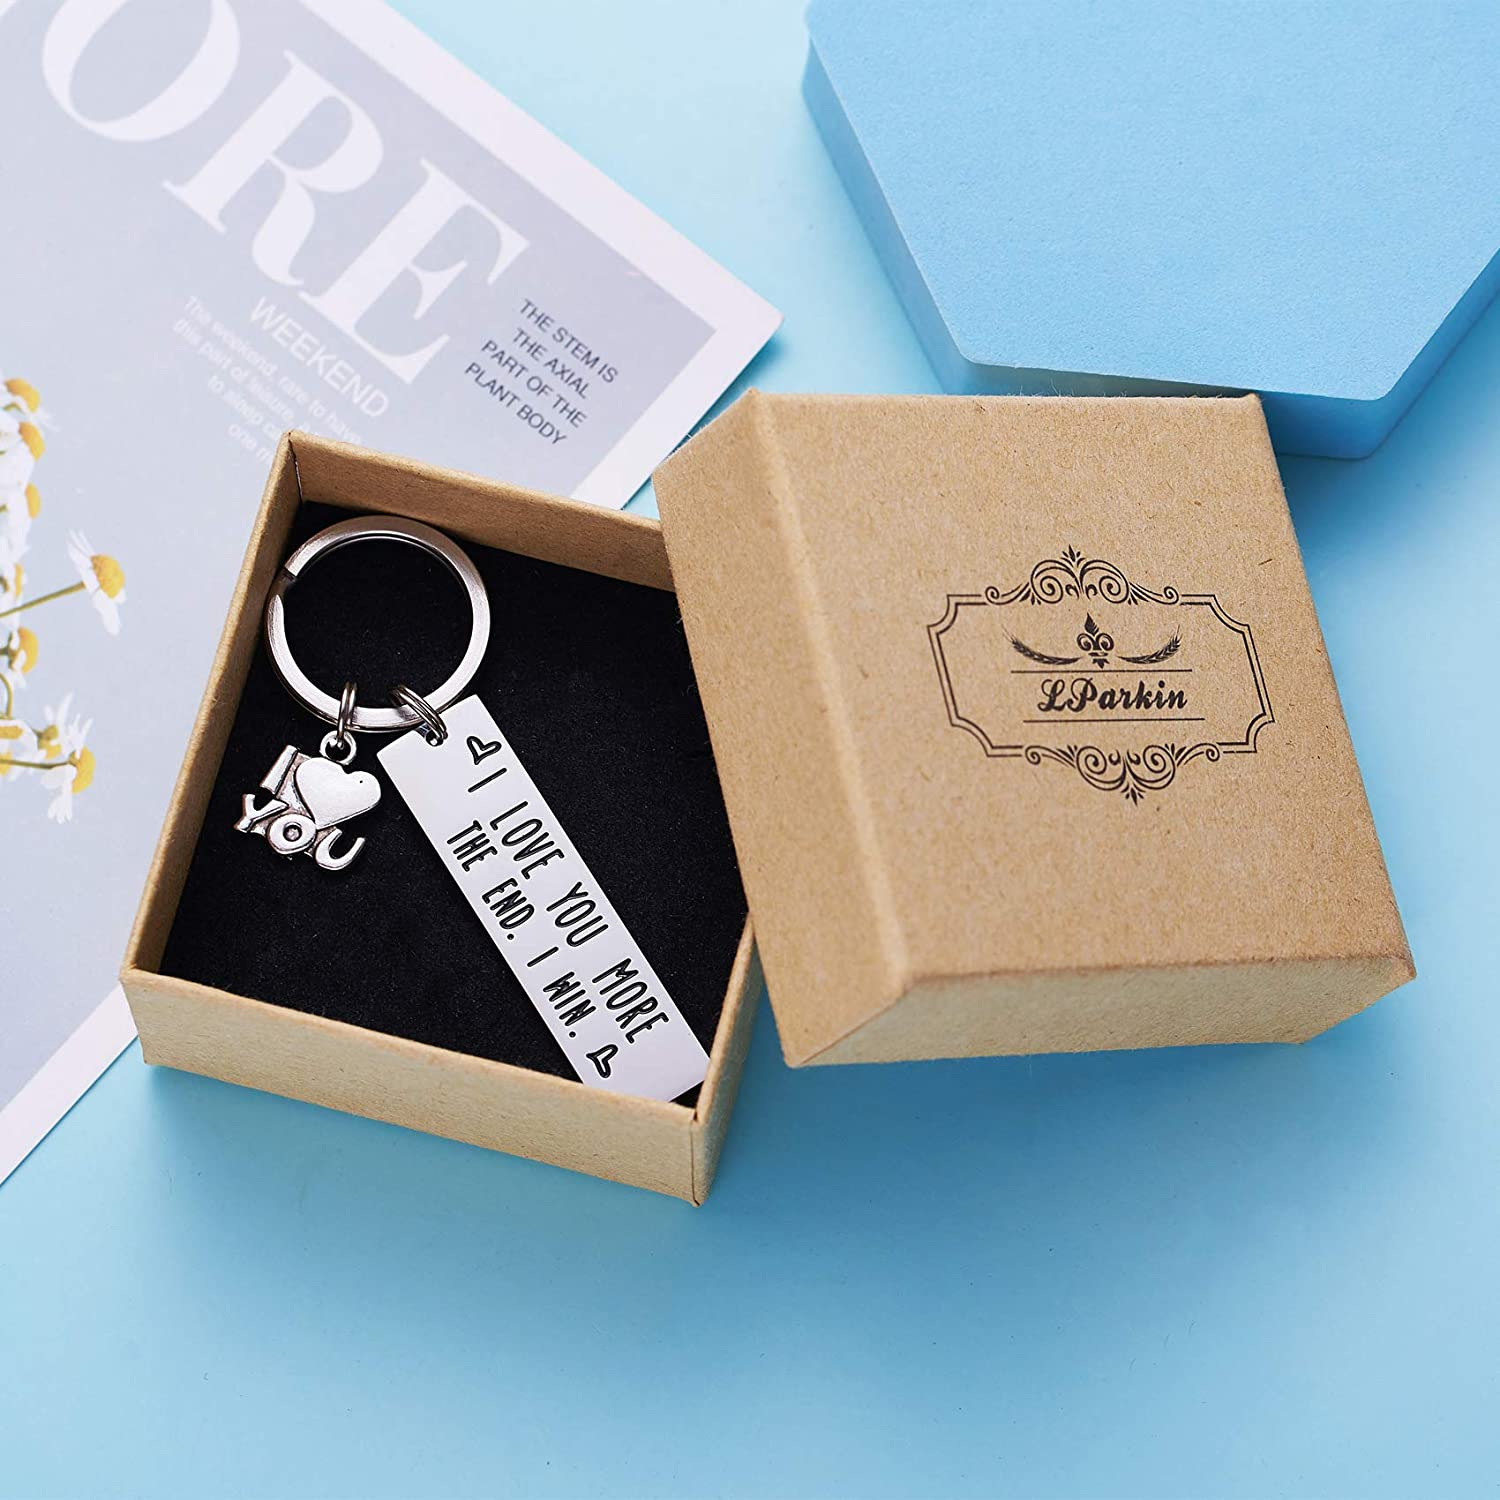 I Love You More The End I Win LParkin I Love You More The End I Win Love You More Mostest Keychain Couples Friendship Key Chain Cute Boyfriend Girlfriend Birthday Gifts for Him Her